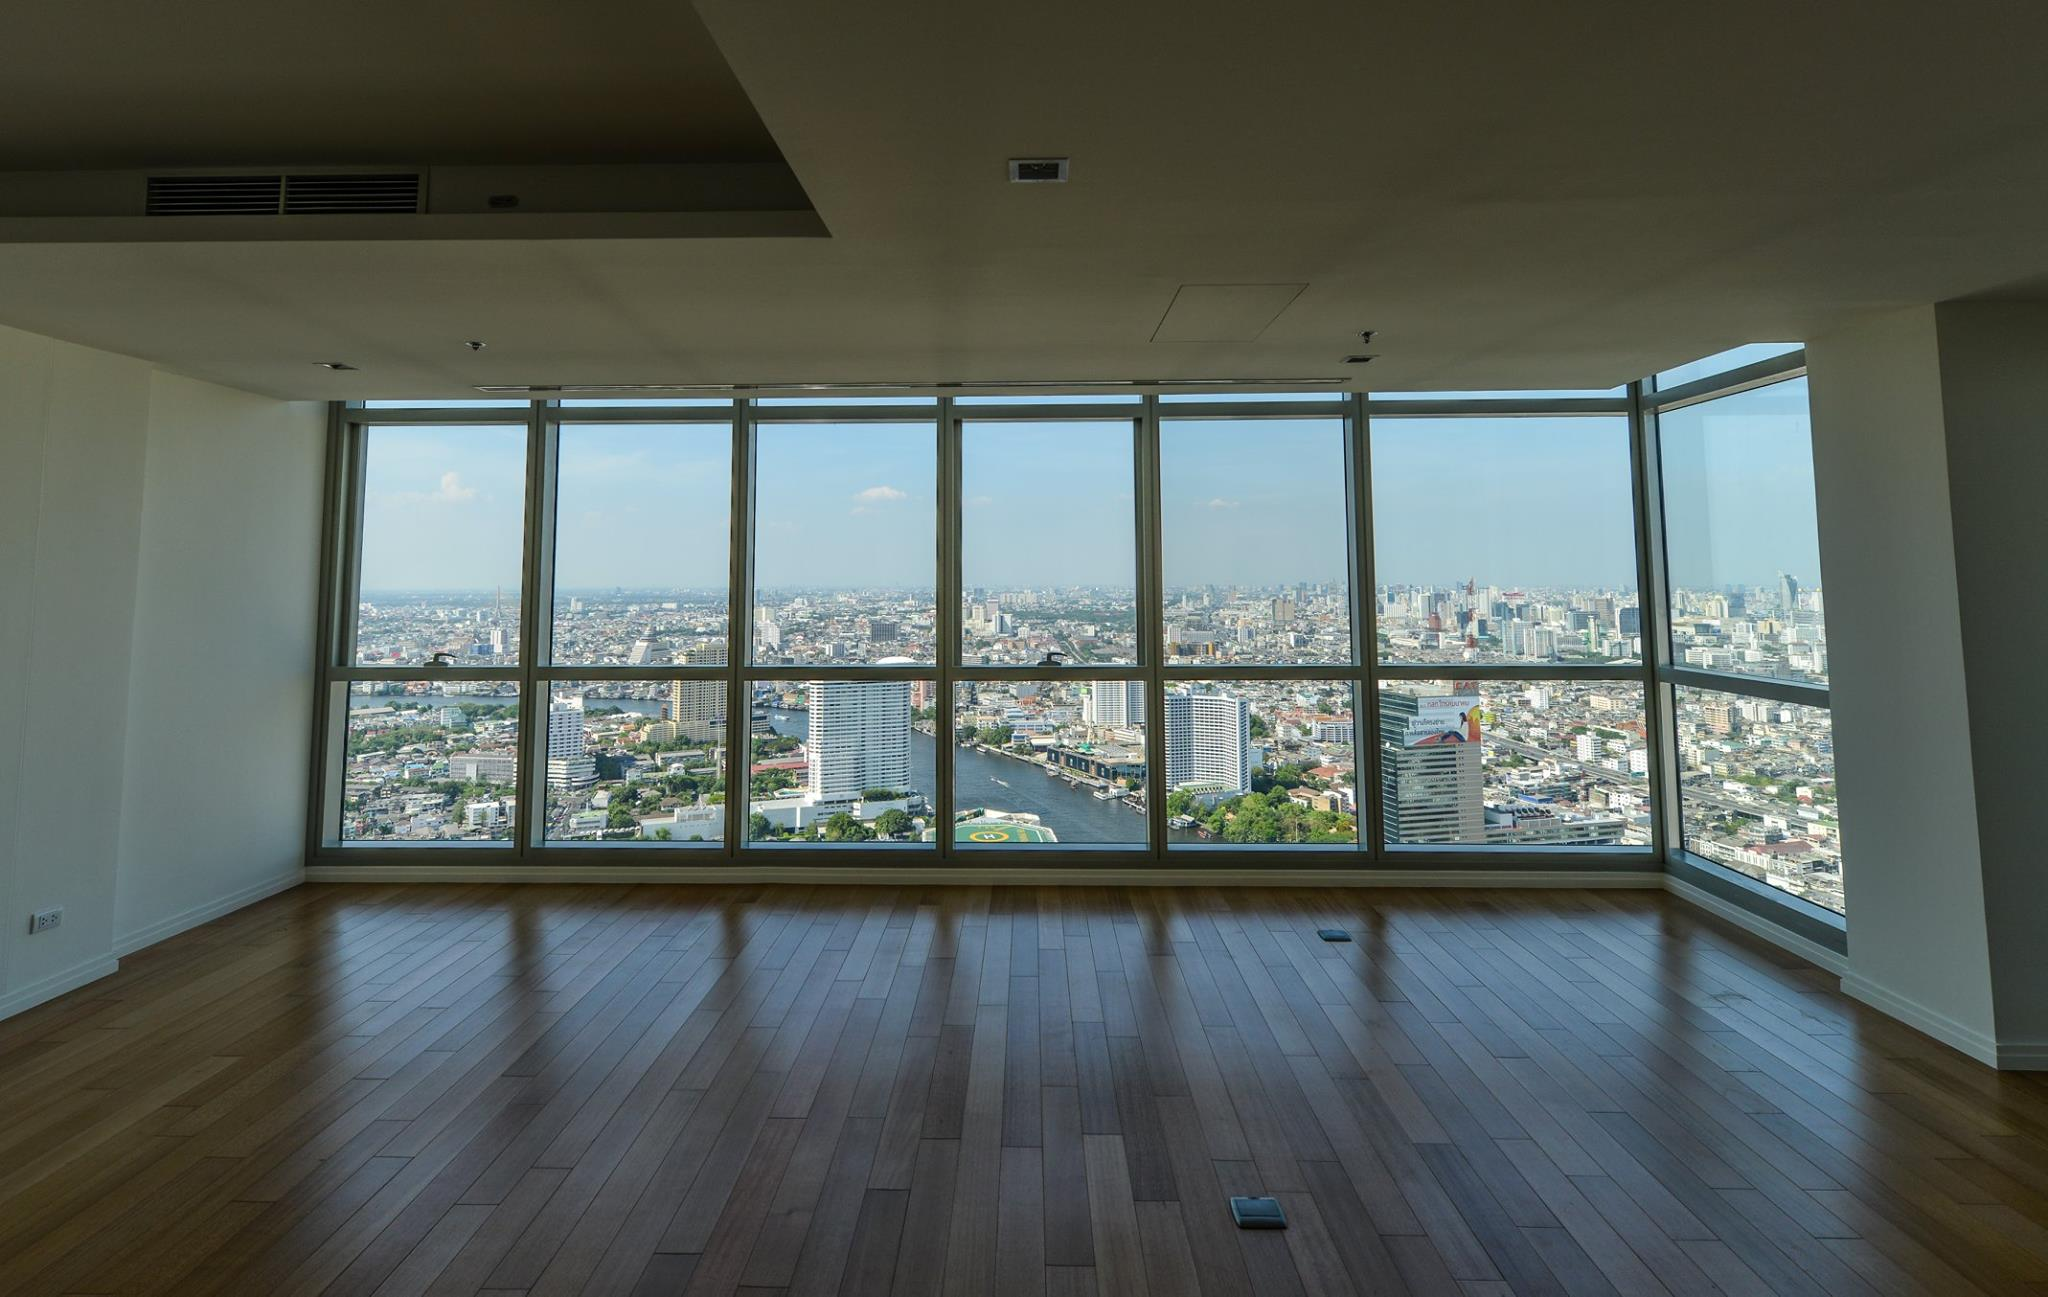 VisionQuest Thailand Property Agency's The River Penthouse 942sq.m spectacular 180 degrees river and city views 17